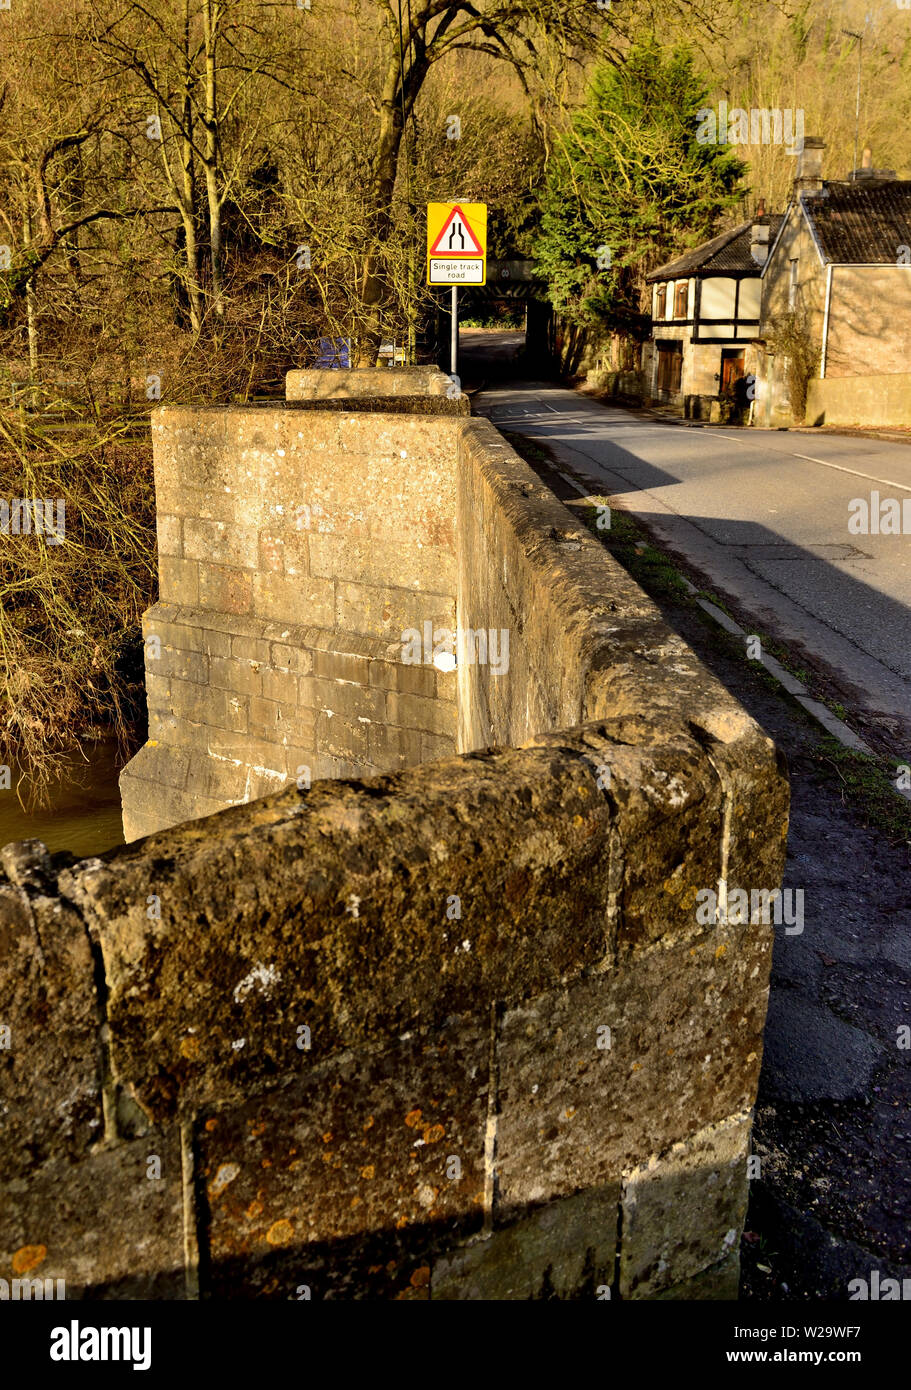 Pedestrian refuges on Stokeford Bridge over the river Avon at Limpley Stoke. Stock Photo